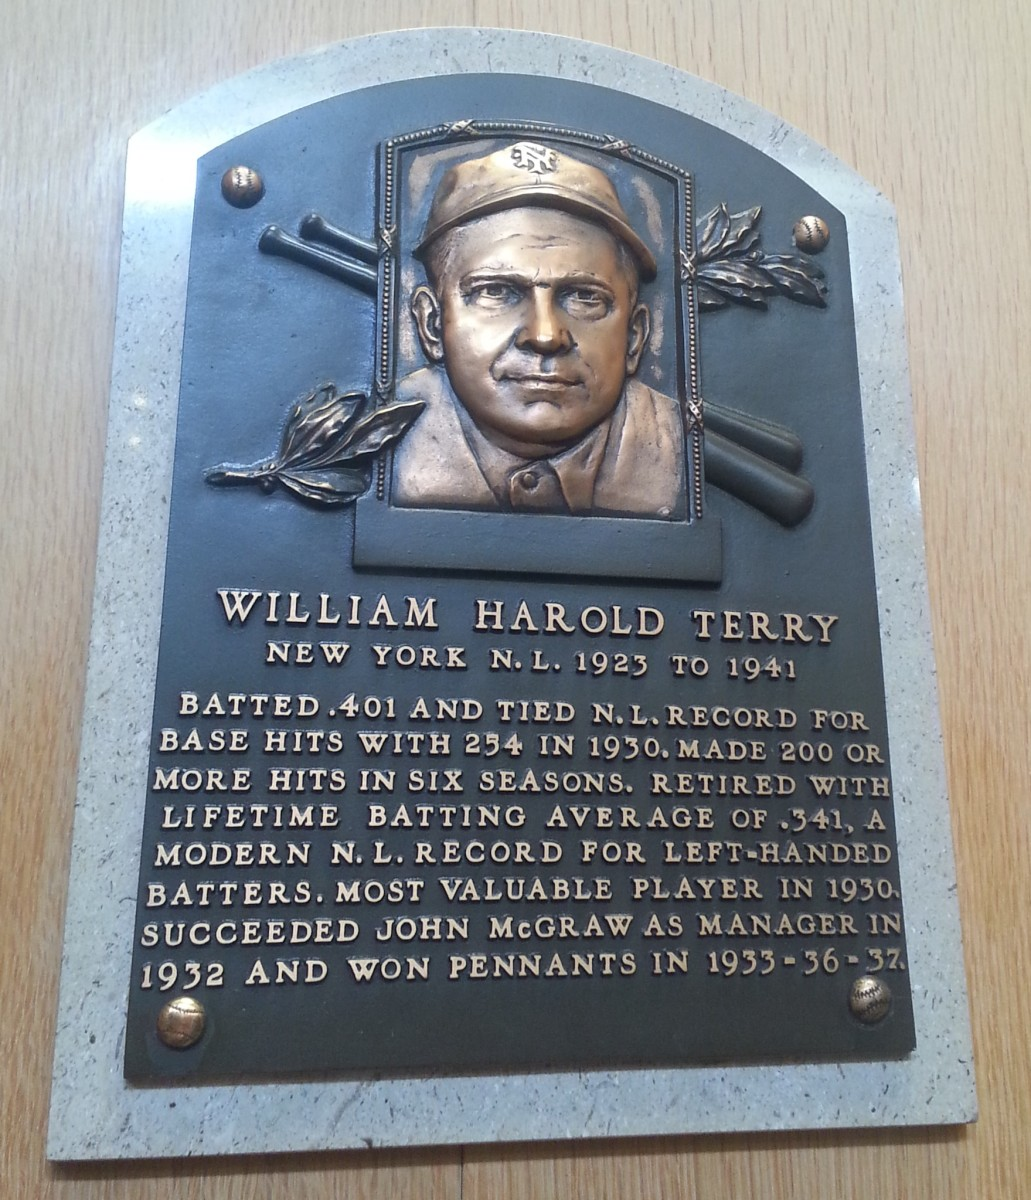 The Hall of Fame plaque of former New York Giants legend Bill Terry, as seen in the Baseball Hall of Fame.